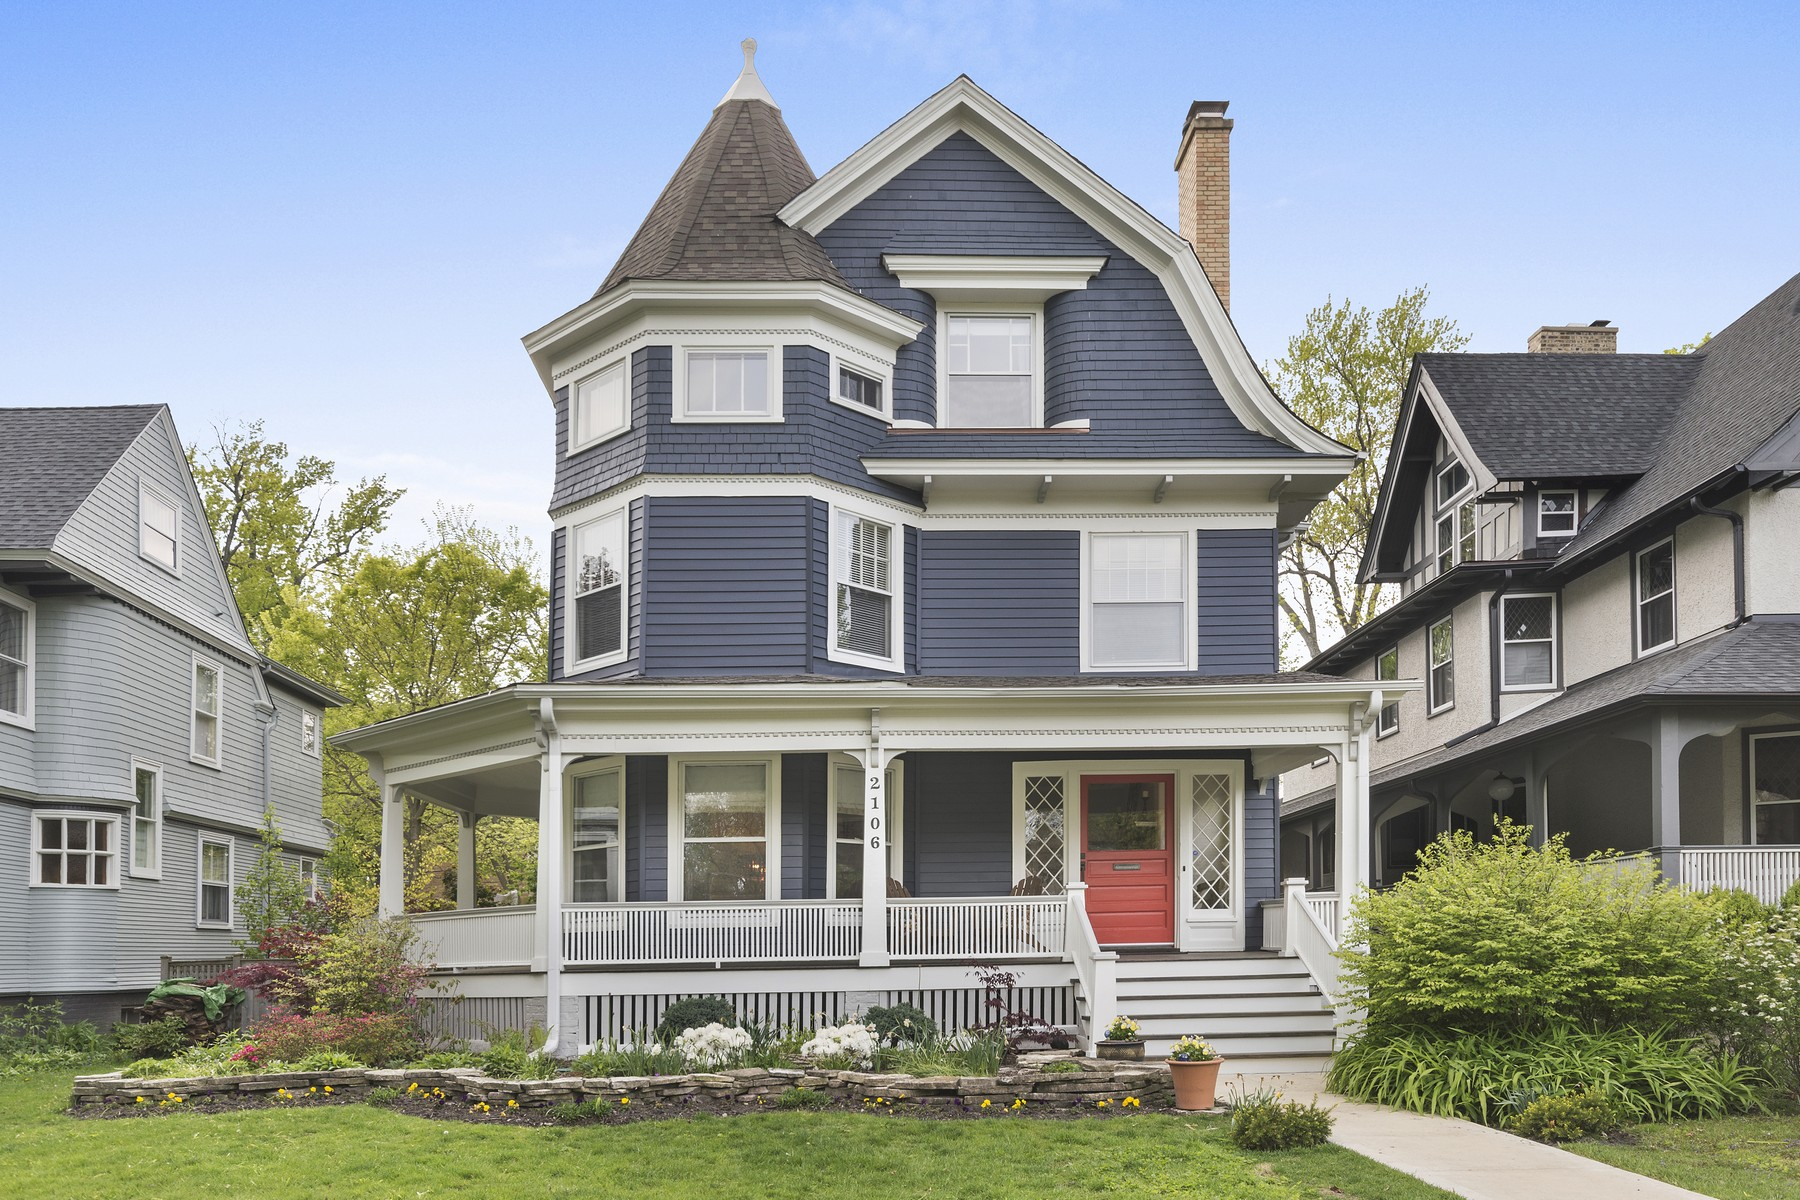 Single Family Home for Sale at Superb Queen Anne Victorian 2106 Orrington Avenue Evanston, Illinois 60201 United States